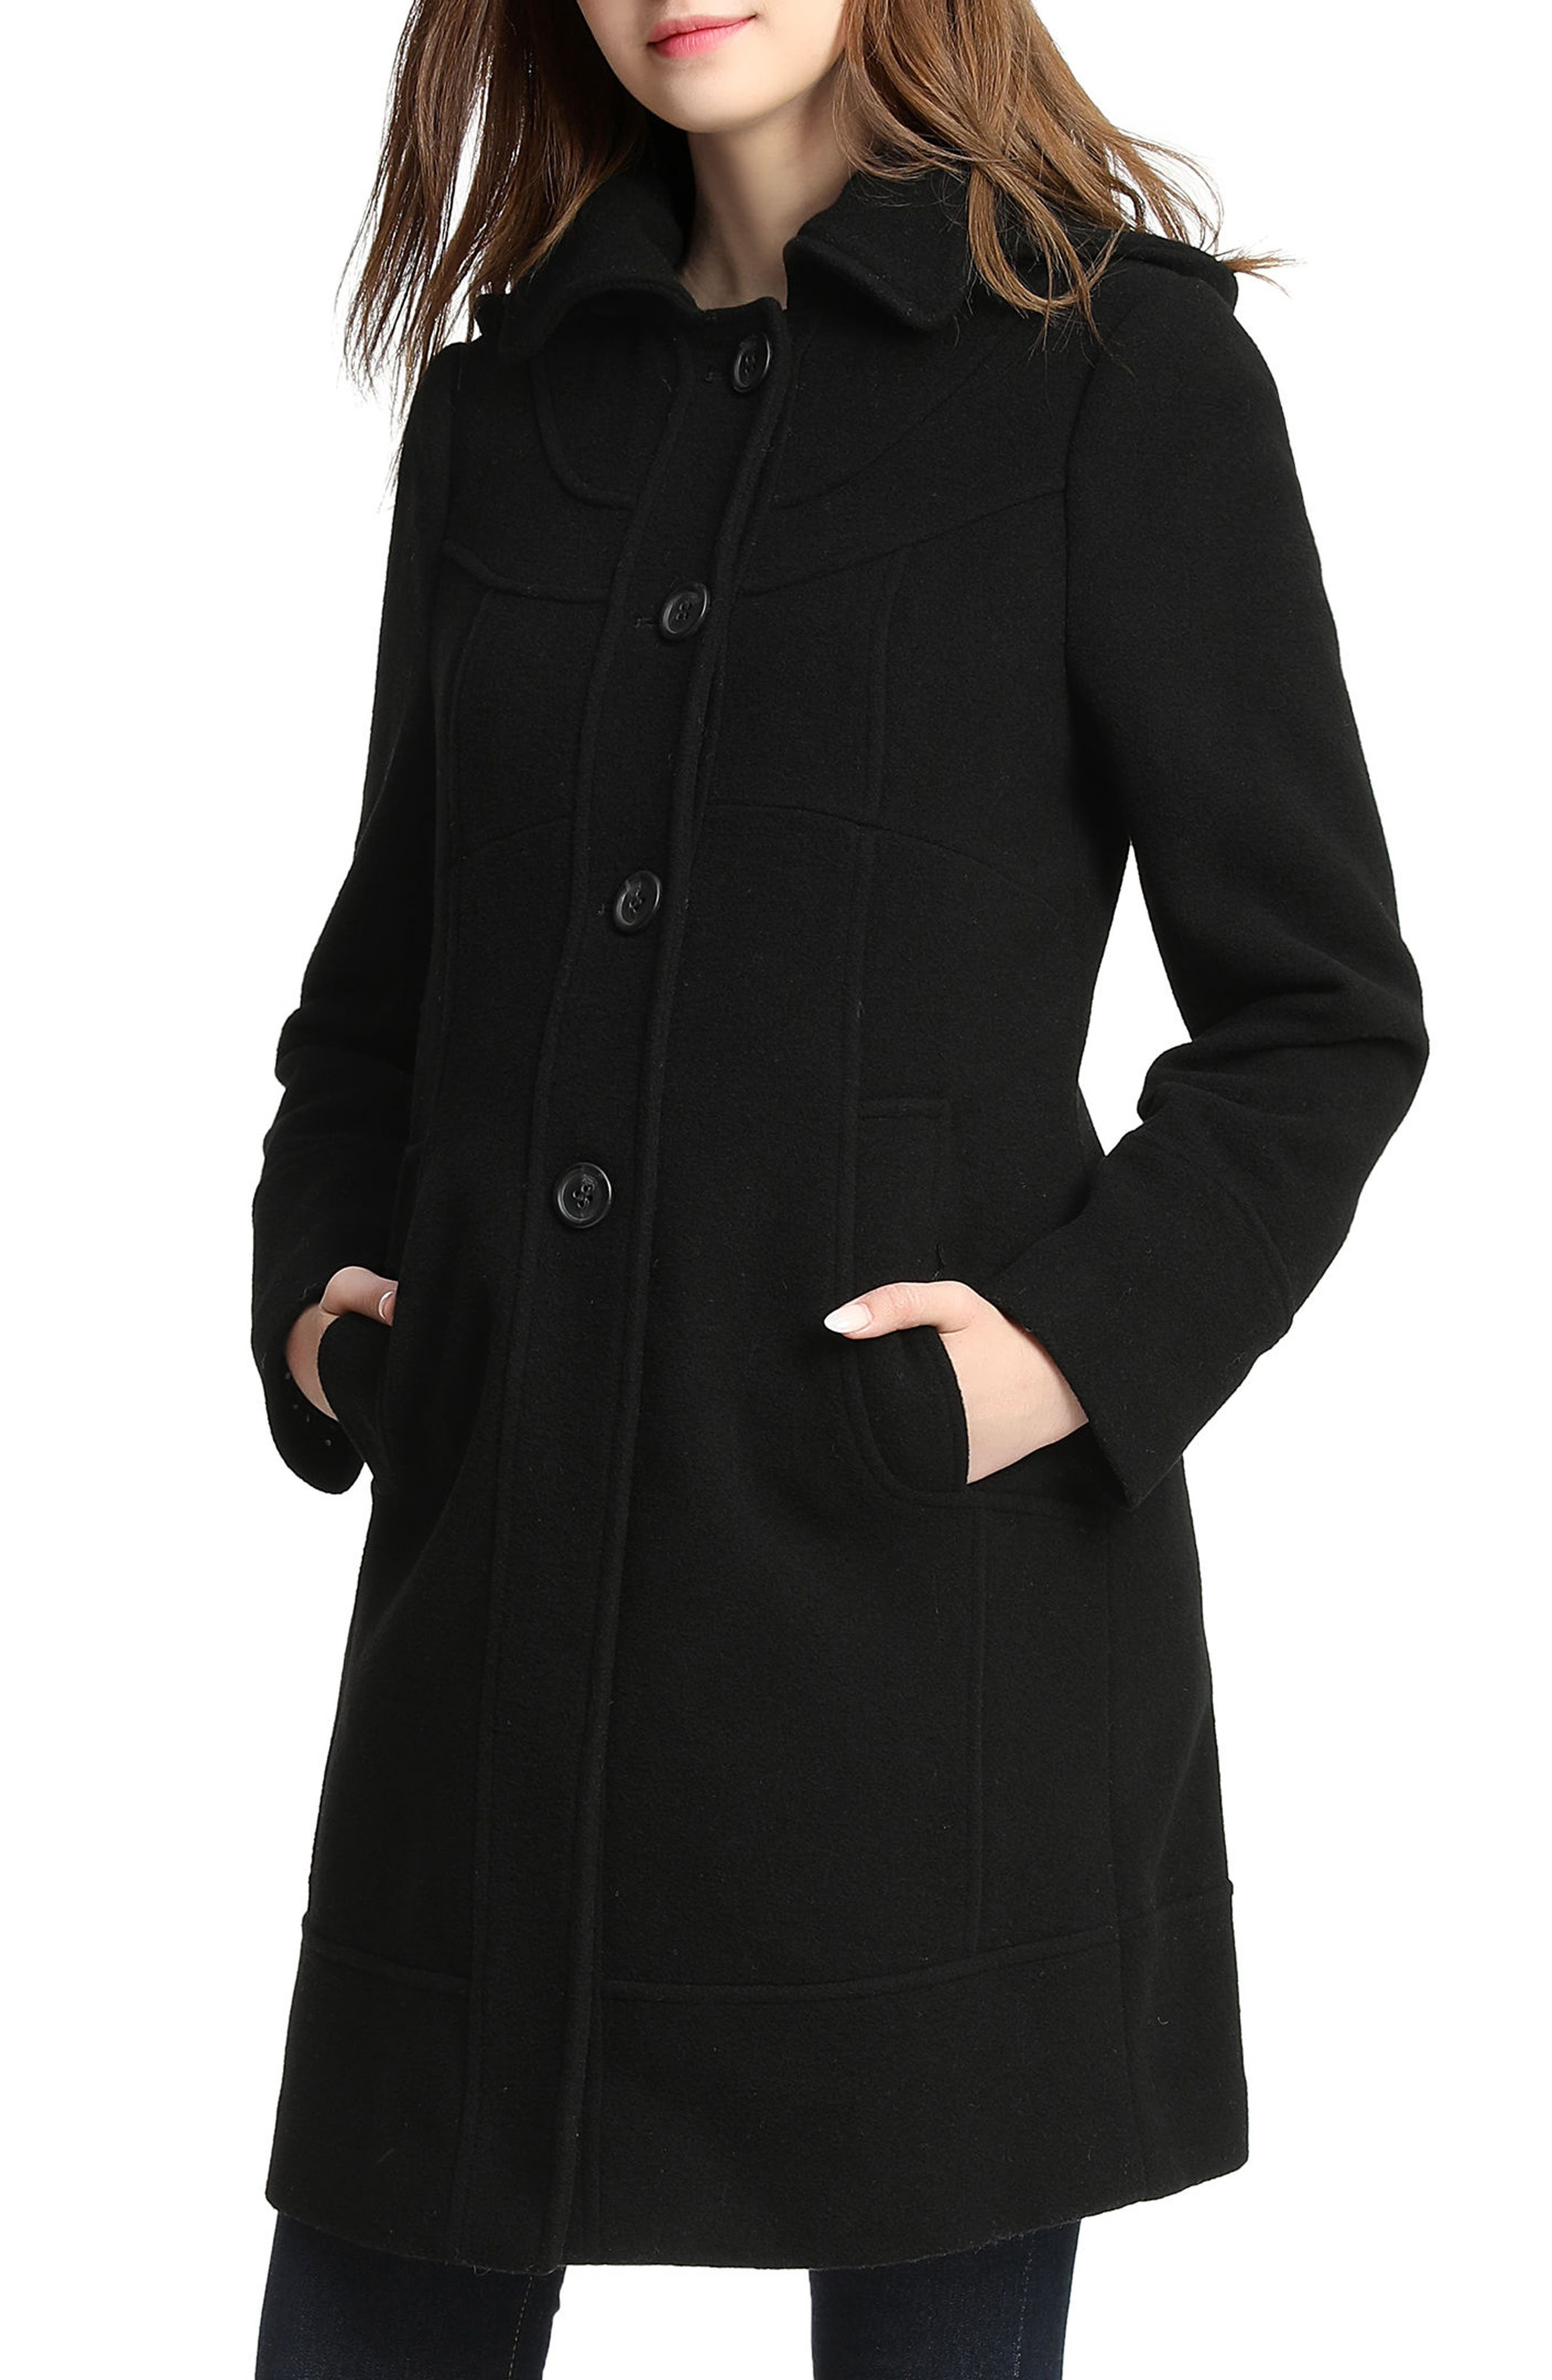 Alternate Image 1 Selected - Kimi and Kai Wool Blend Maternity Coat